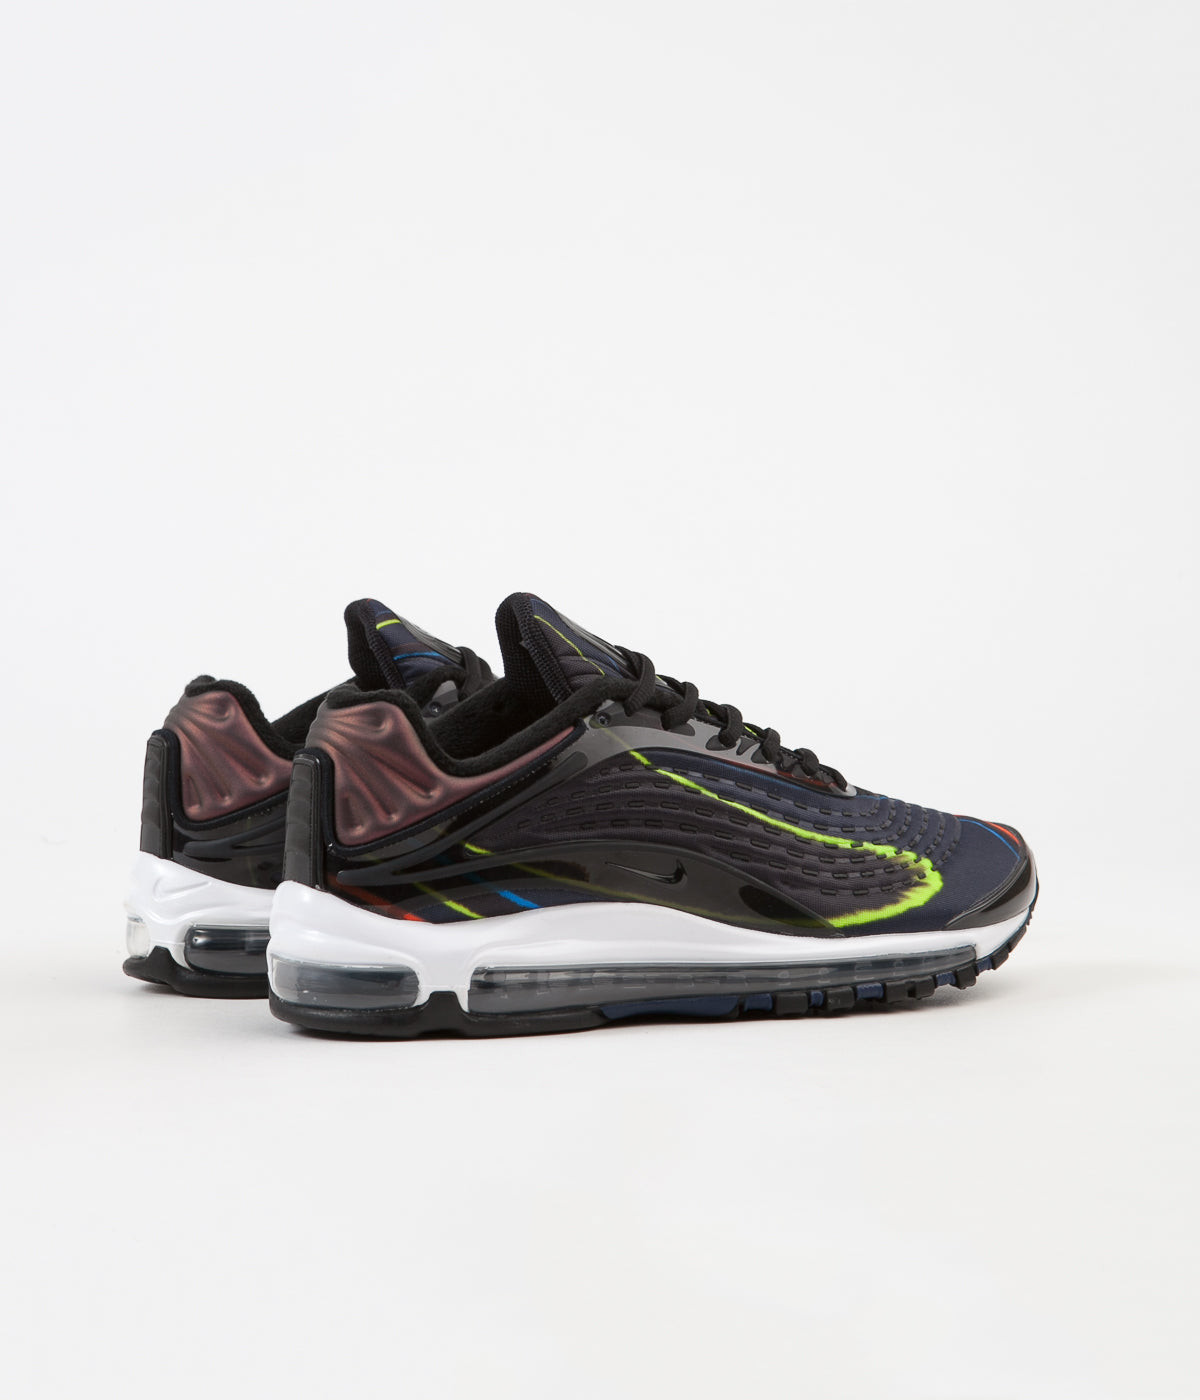 huge discount 9db5f c930c ... Nike Air Max Deluxe Shoes - Black   Black - Midnight Navy - Reflect  Silver ...